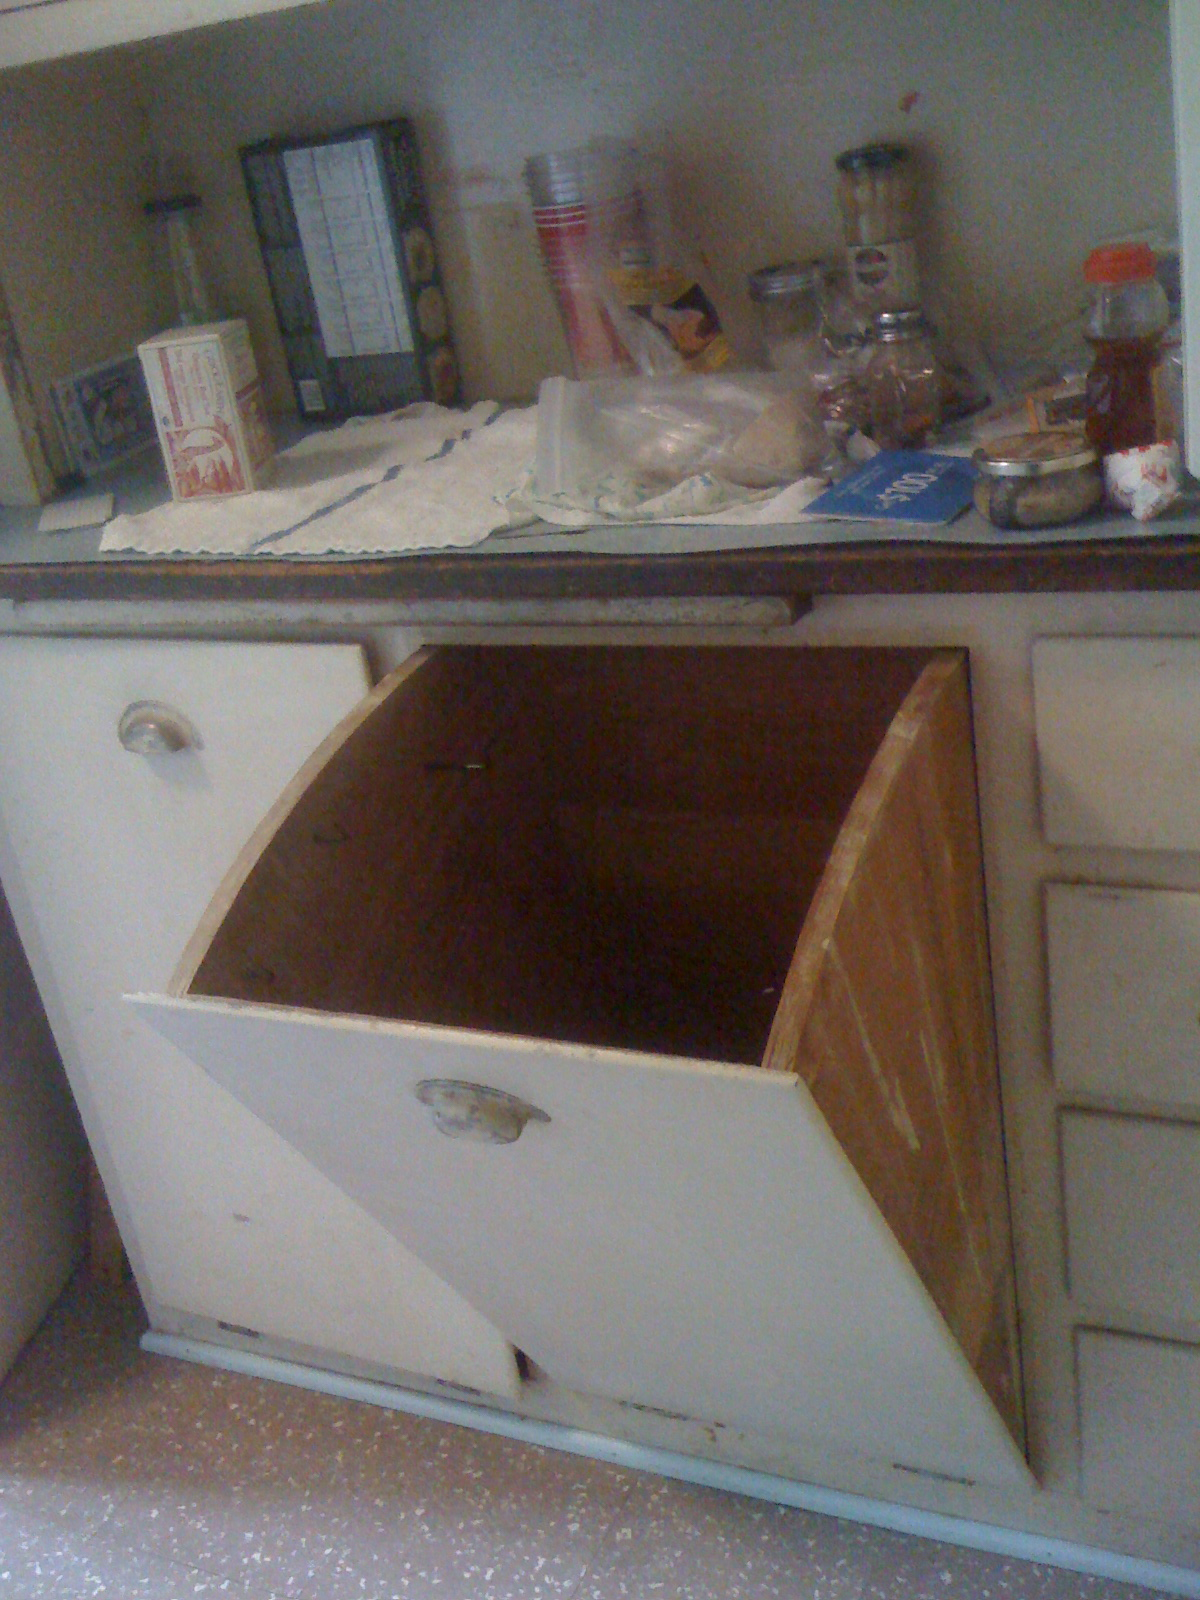 Lower Drawers and Bins: Below the upper cabinet was a countertop covered in  blue linoleum - Antique Kitchen Cupboard With Flour Bin Antique Furniture